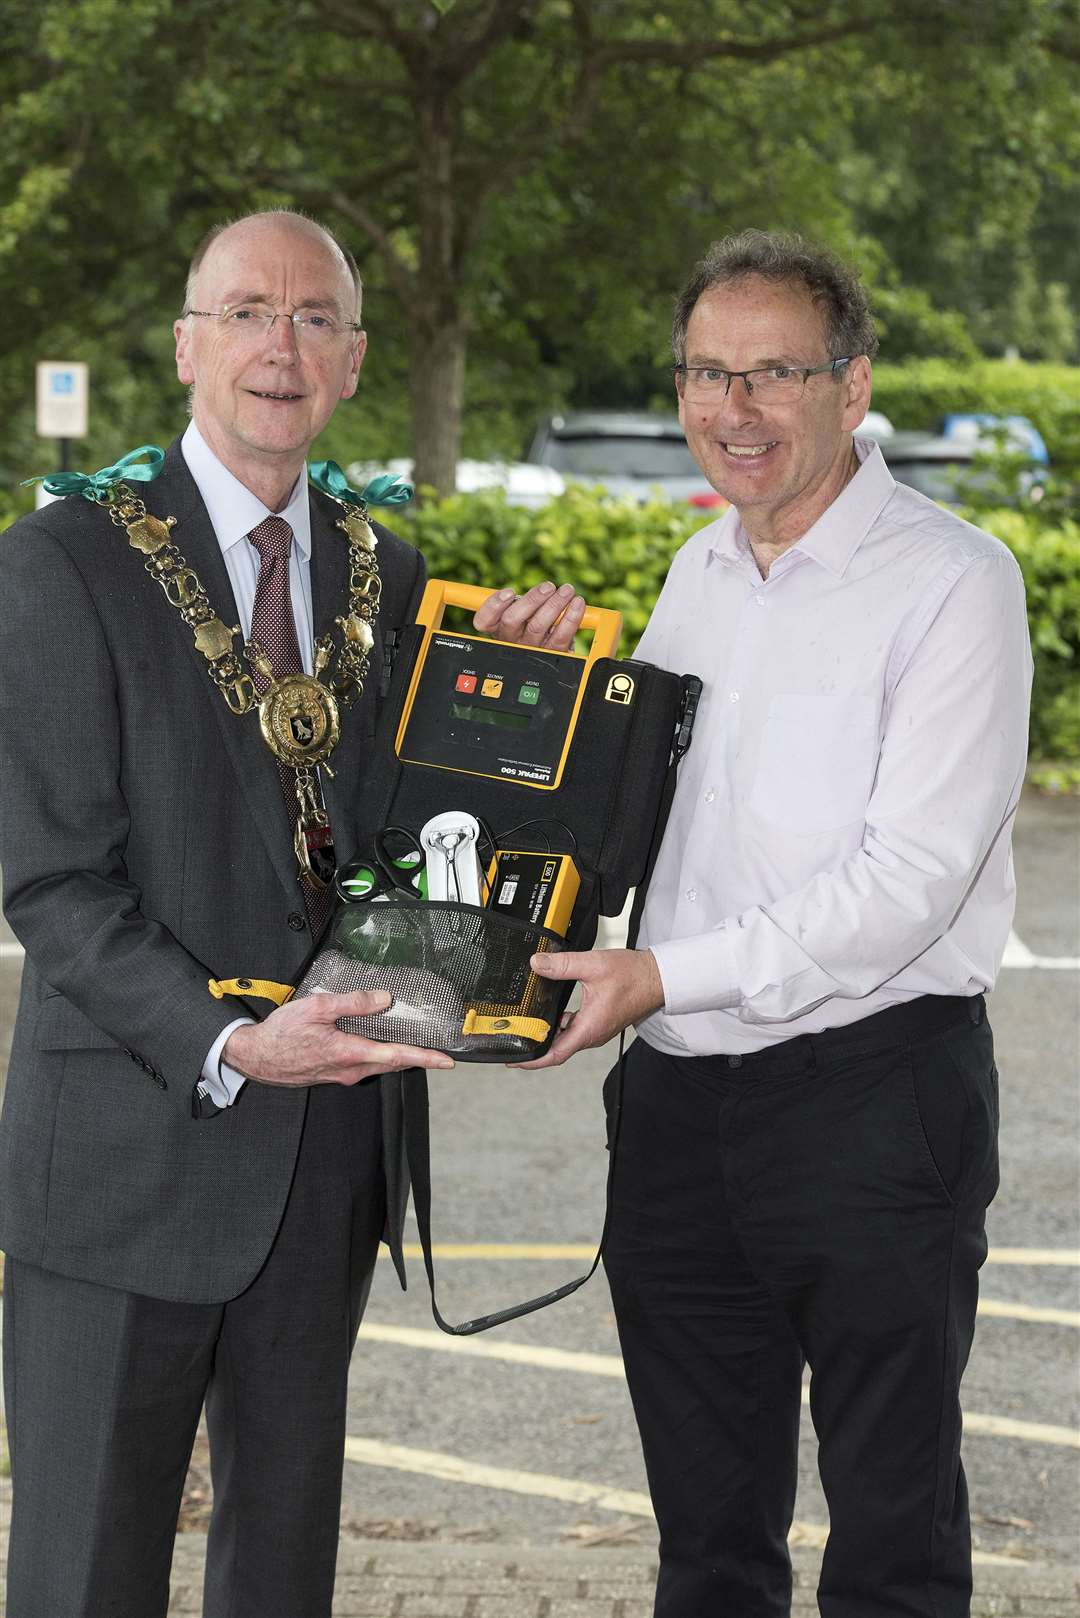 SUDBURY.Kingfisher Leisure Centre, Station Road, Sudbury.Sudbury mayor Robert Spivey has backed a campaign by local resident Andy Read, who survived a cardiac arrest in 2018, to increase the number of 24/7 community defibrillators around the town. Picture Mark Westley. (12600335)